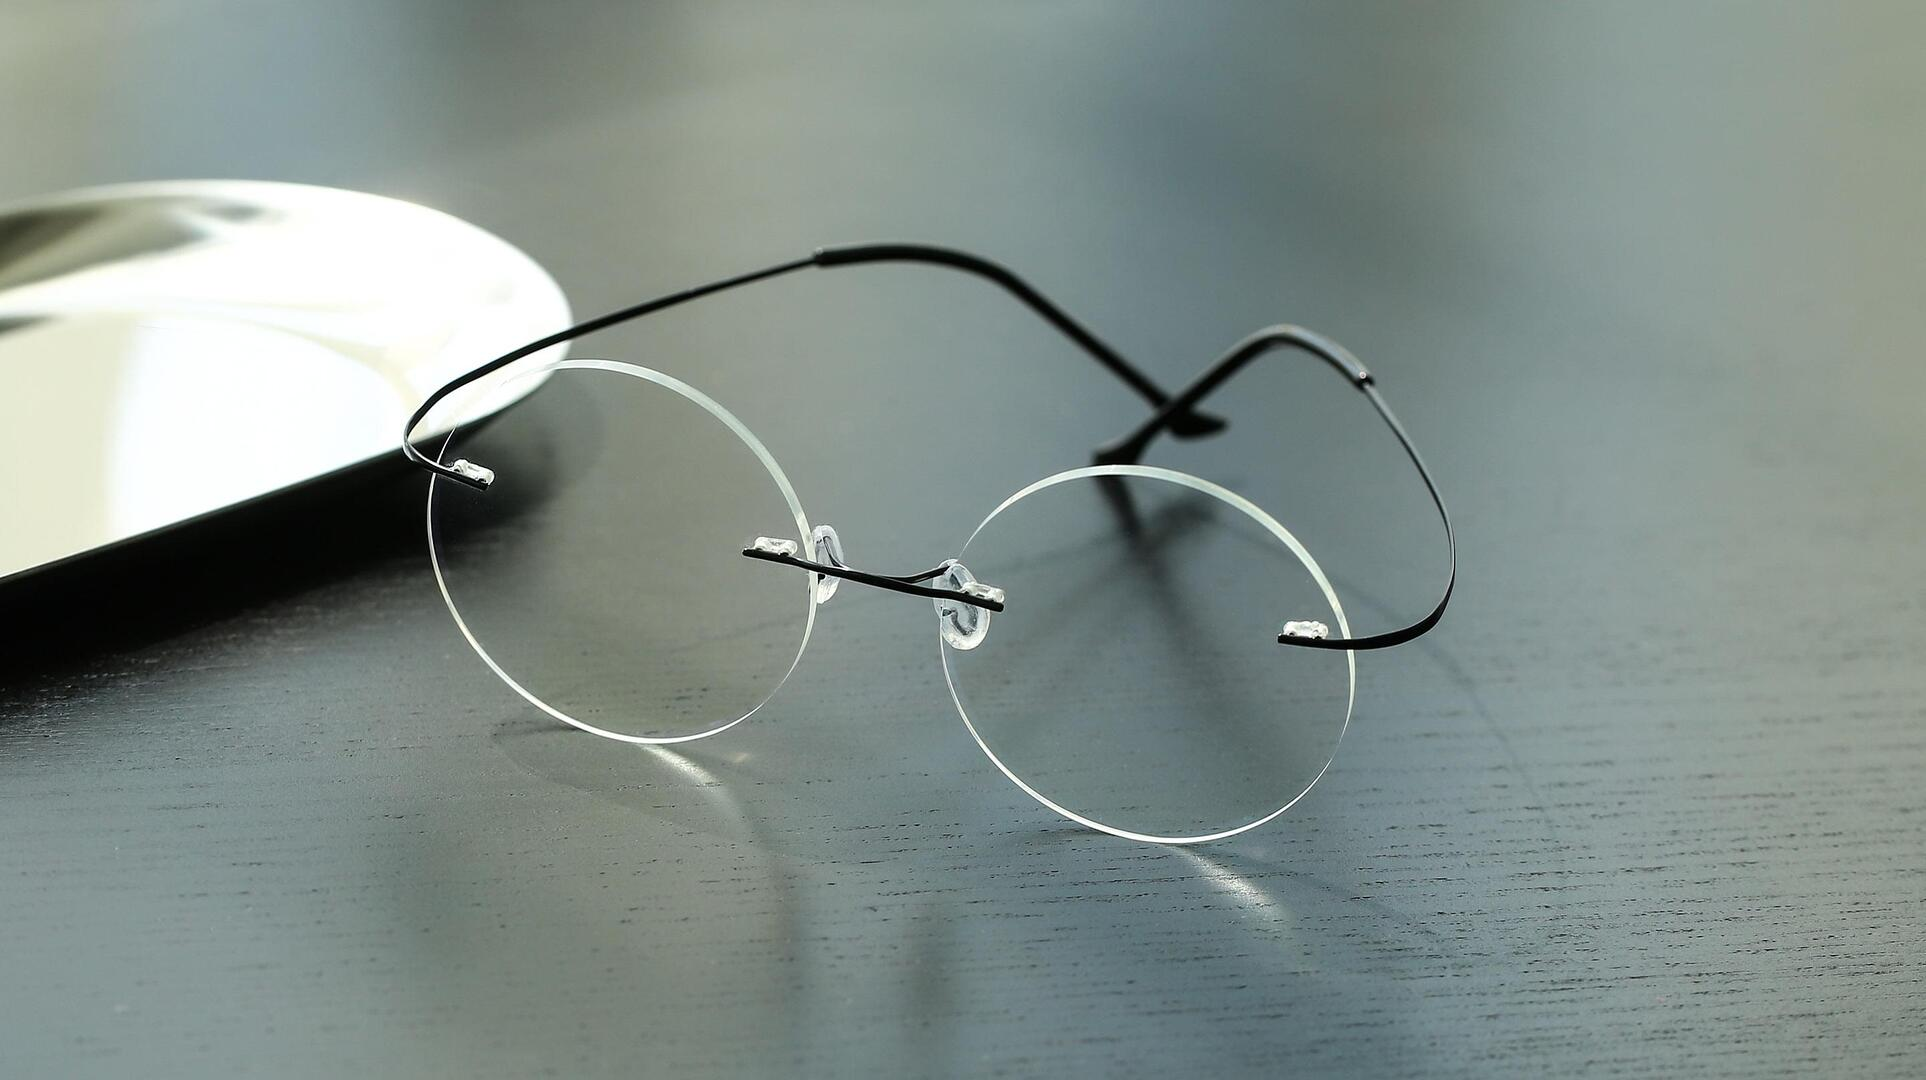 Stylish round rimless glasses are lightweight and fashionable on men and women.